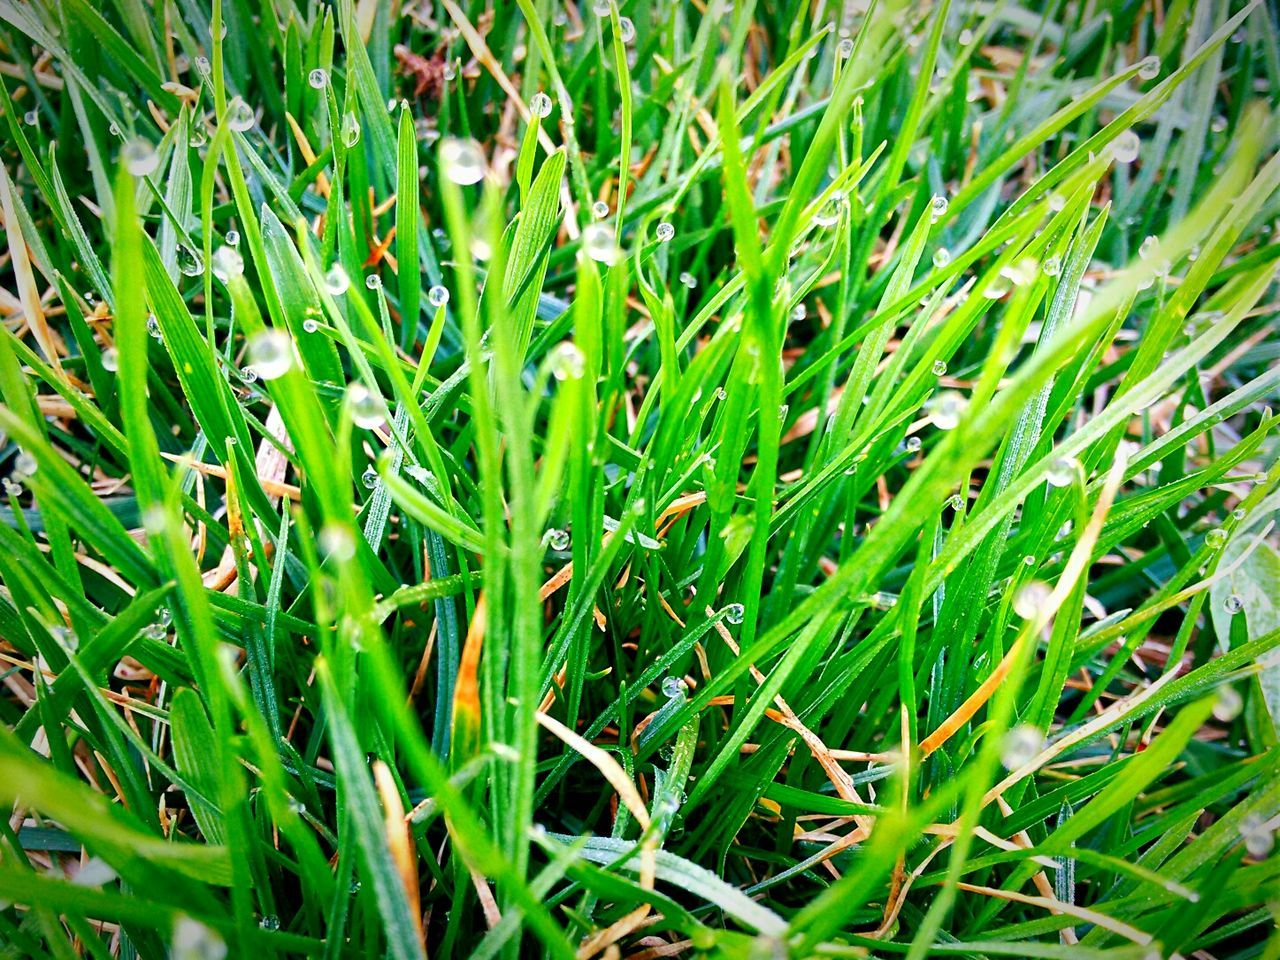 green color, grass, growth, nature, field, plant, day, outdoors, beauty in nature, no people, backgrounds, close-up, freshness